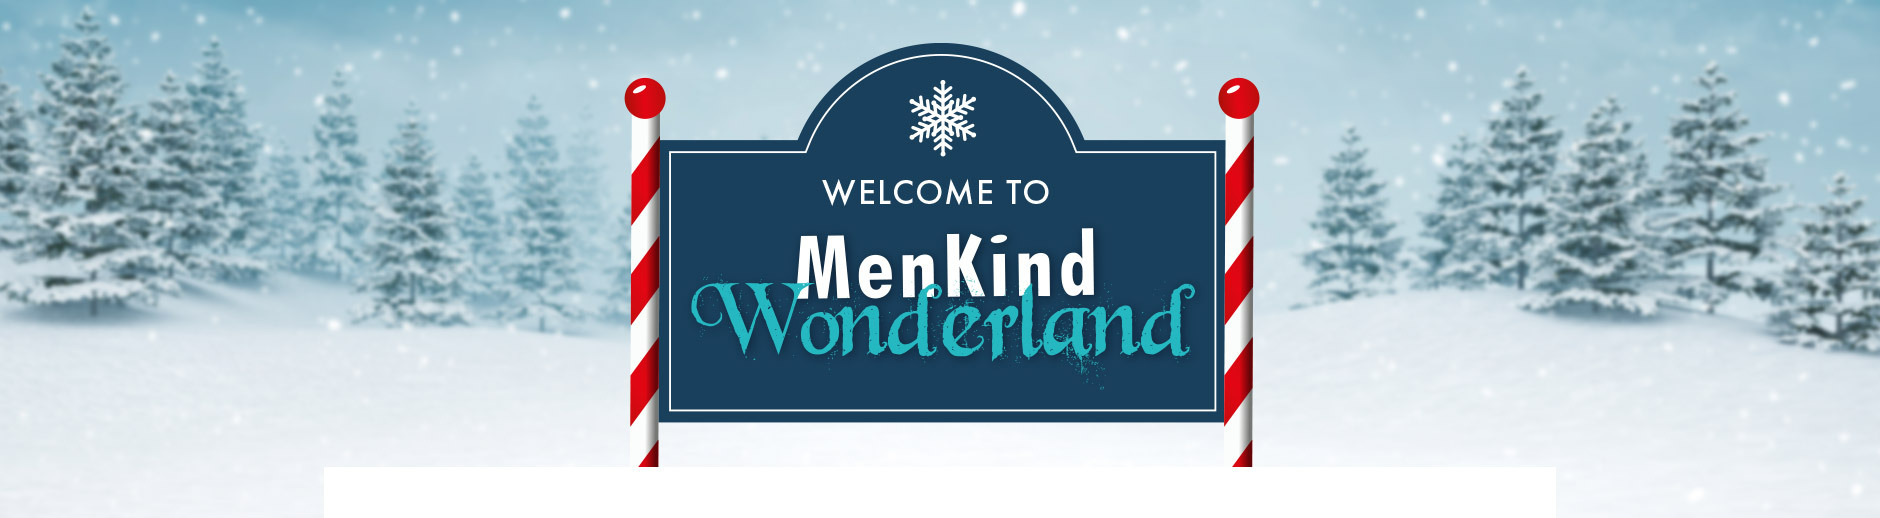 Welcome to Menkind's 2021 Christmas Wonderland